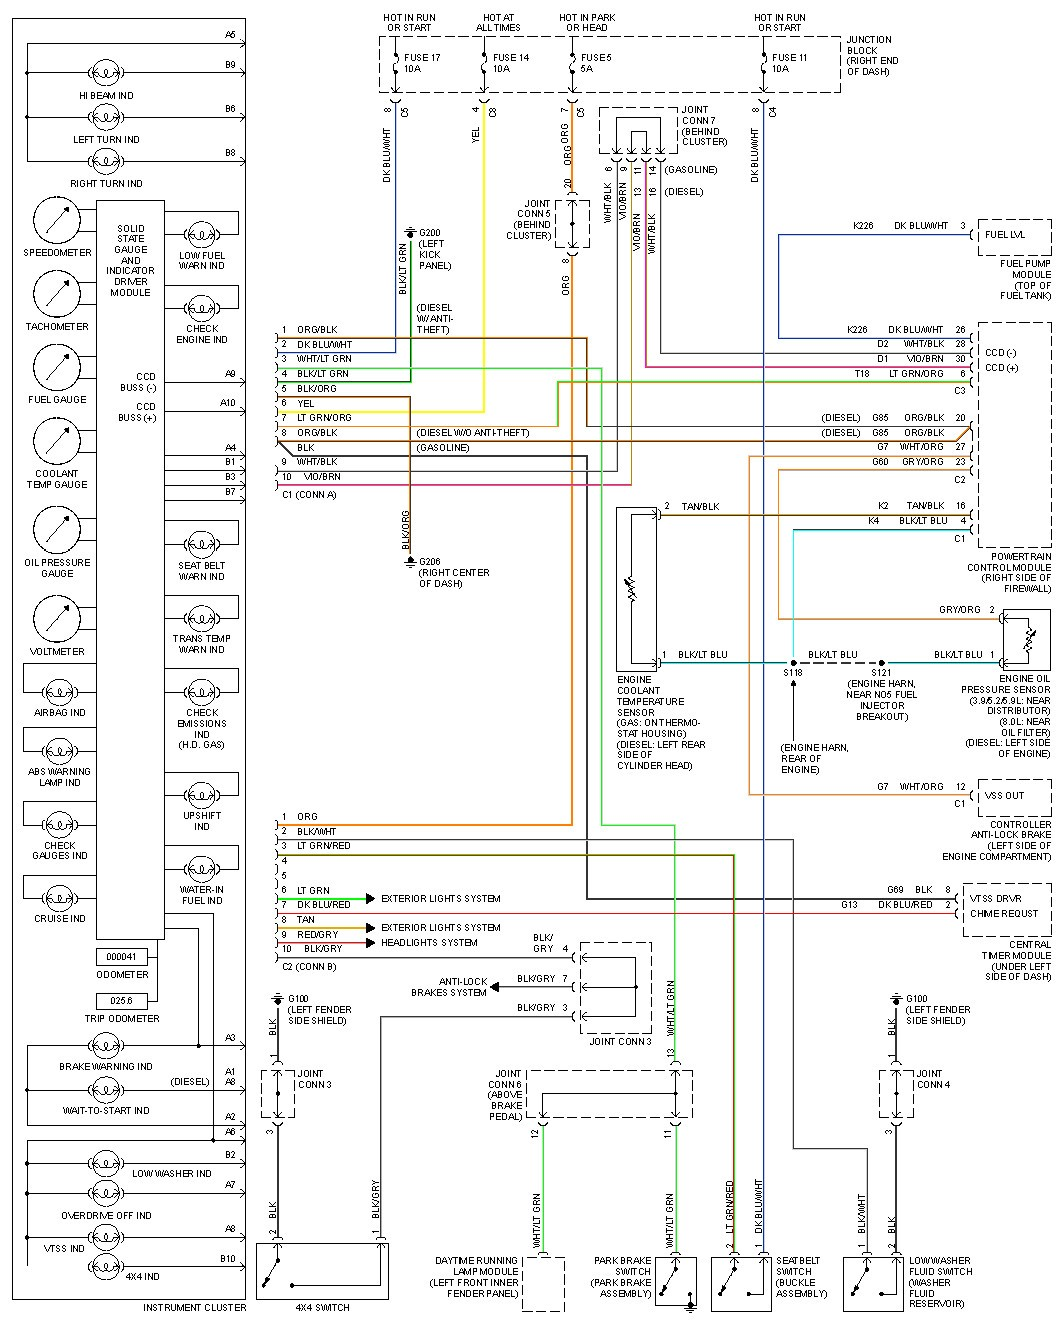 2002 Dodge Ram 1500 Wiring Diagram from static-cdn.imageservice.cloud